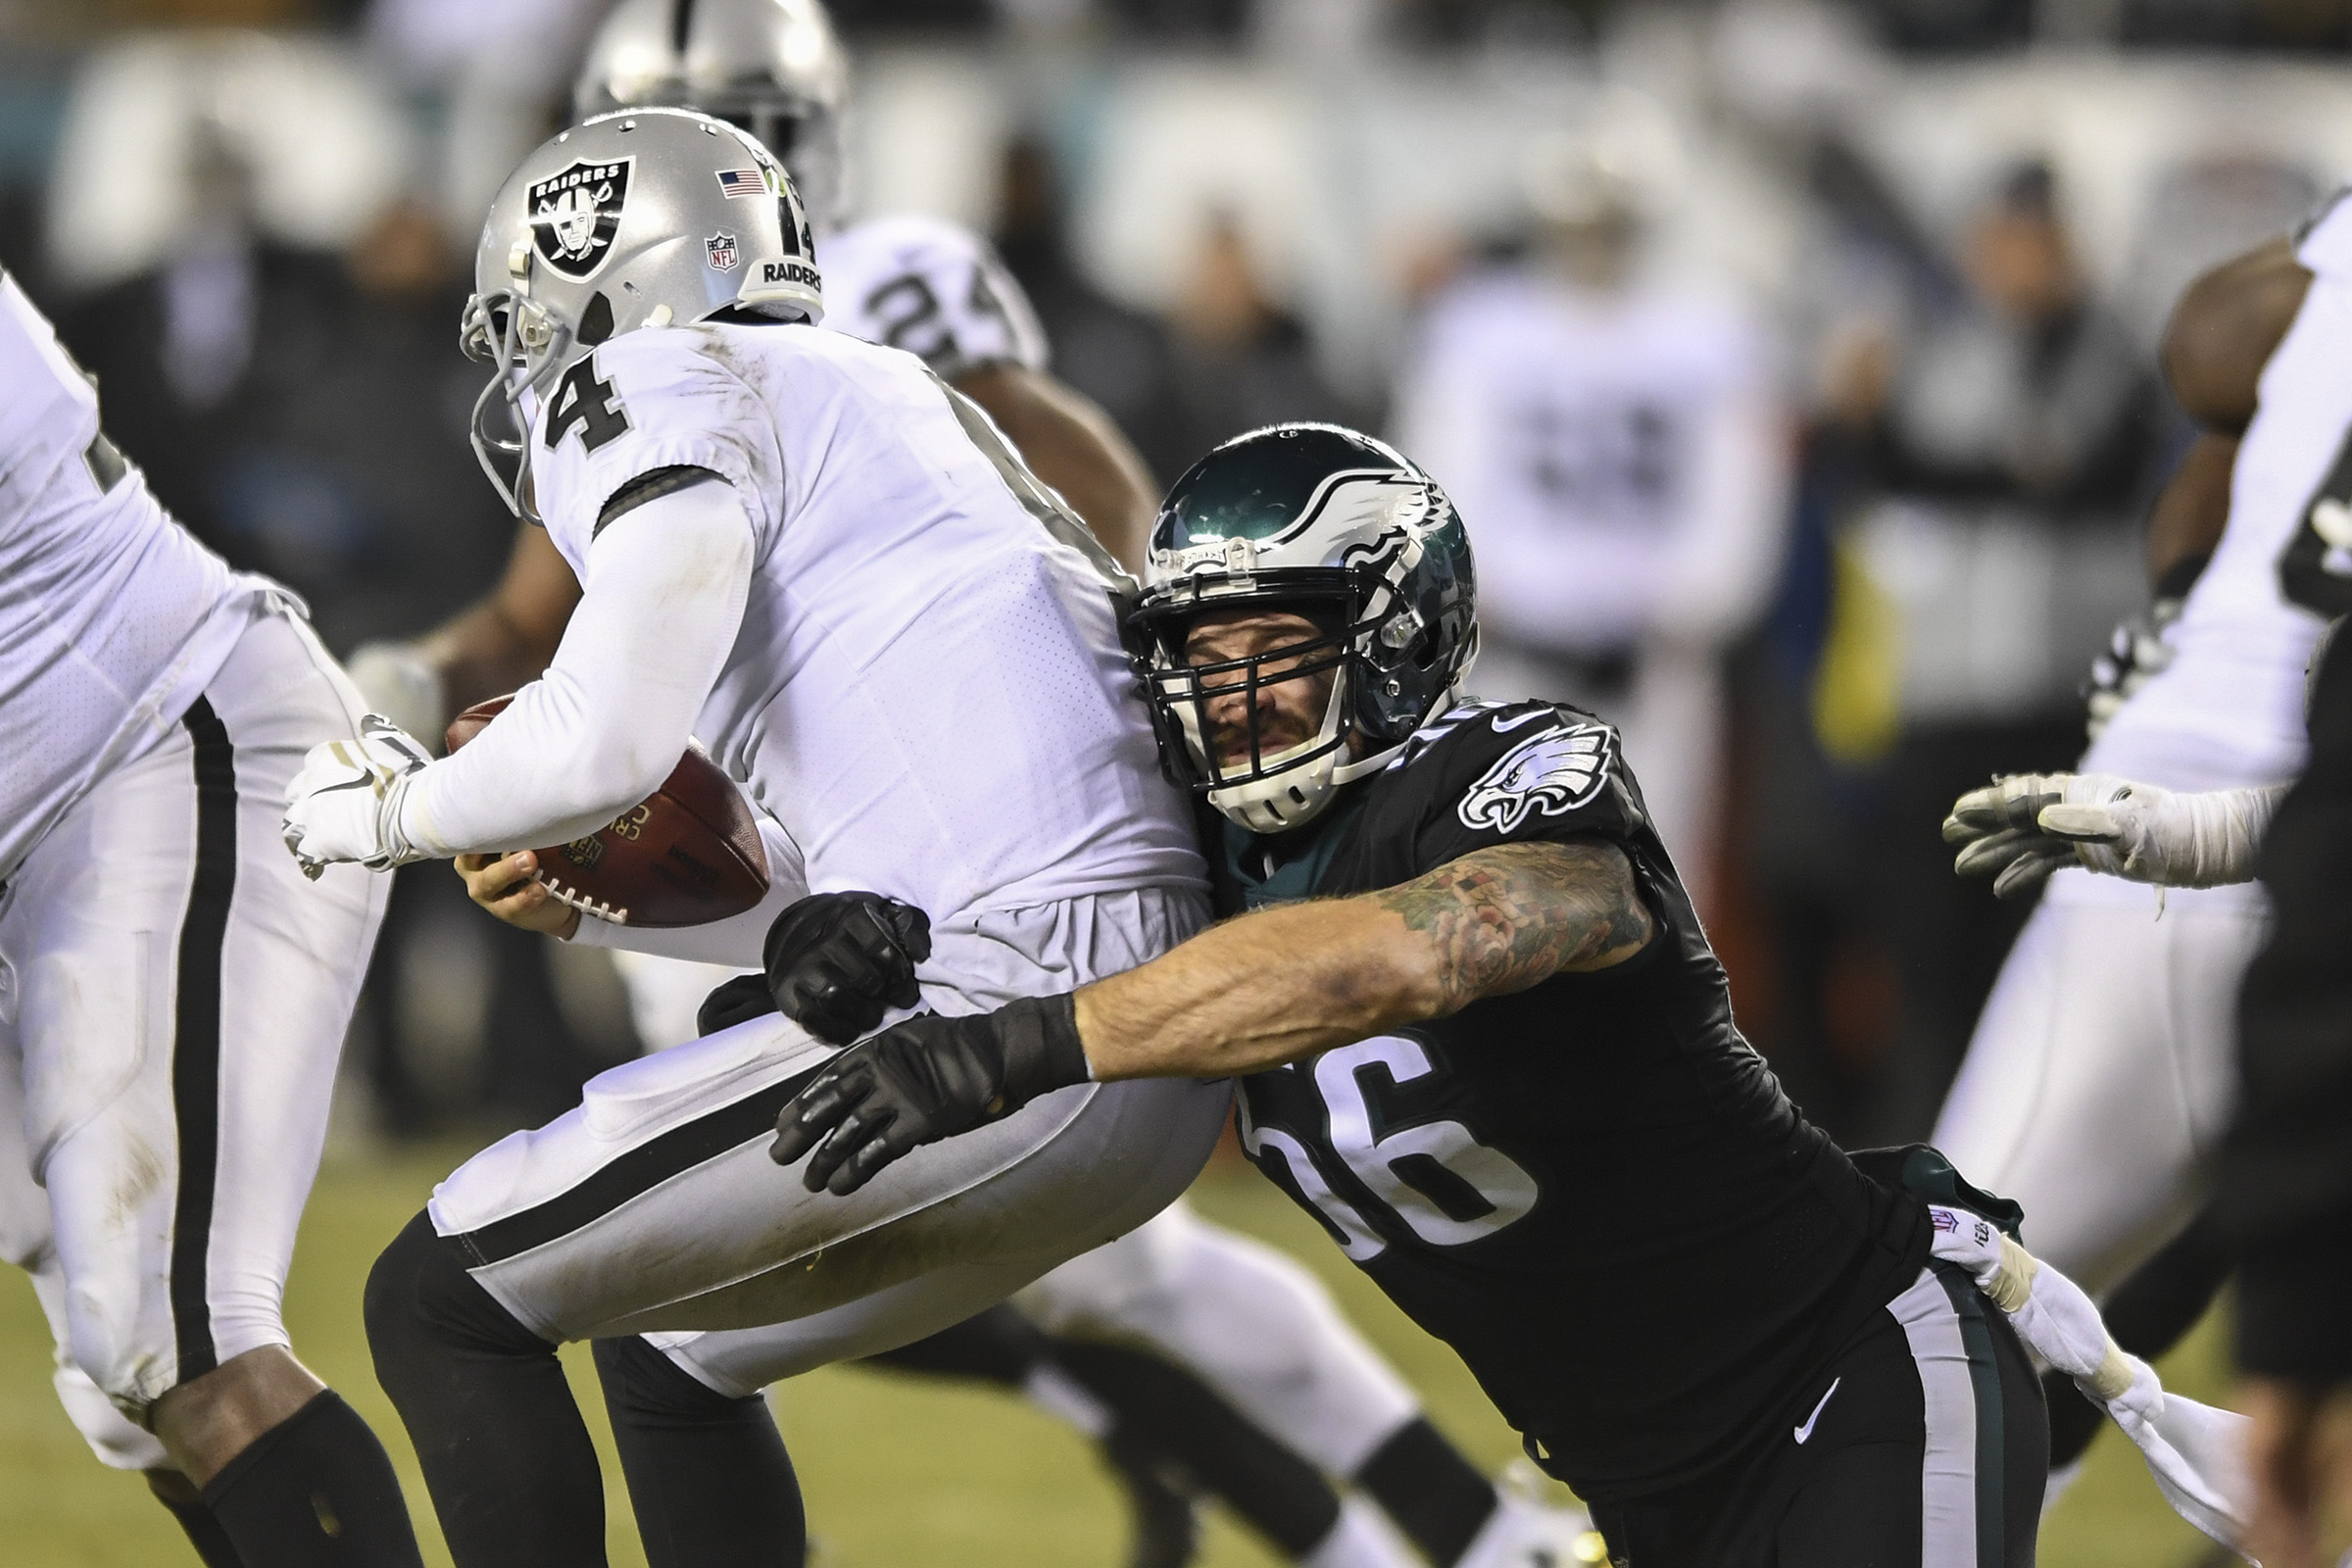 In a play negated by a penalty, Eagles defensive end Chris Long sacks Raiders quarterback Derek Carr.